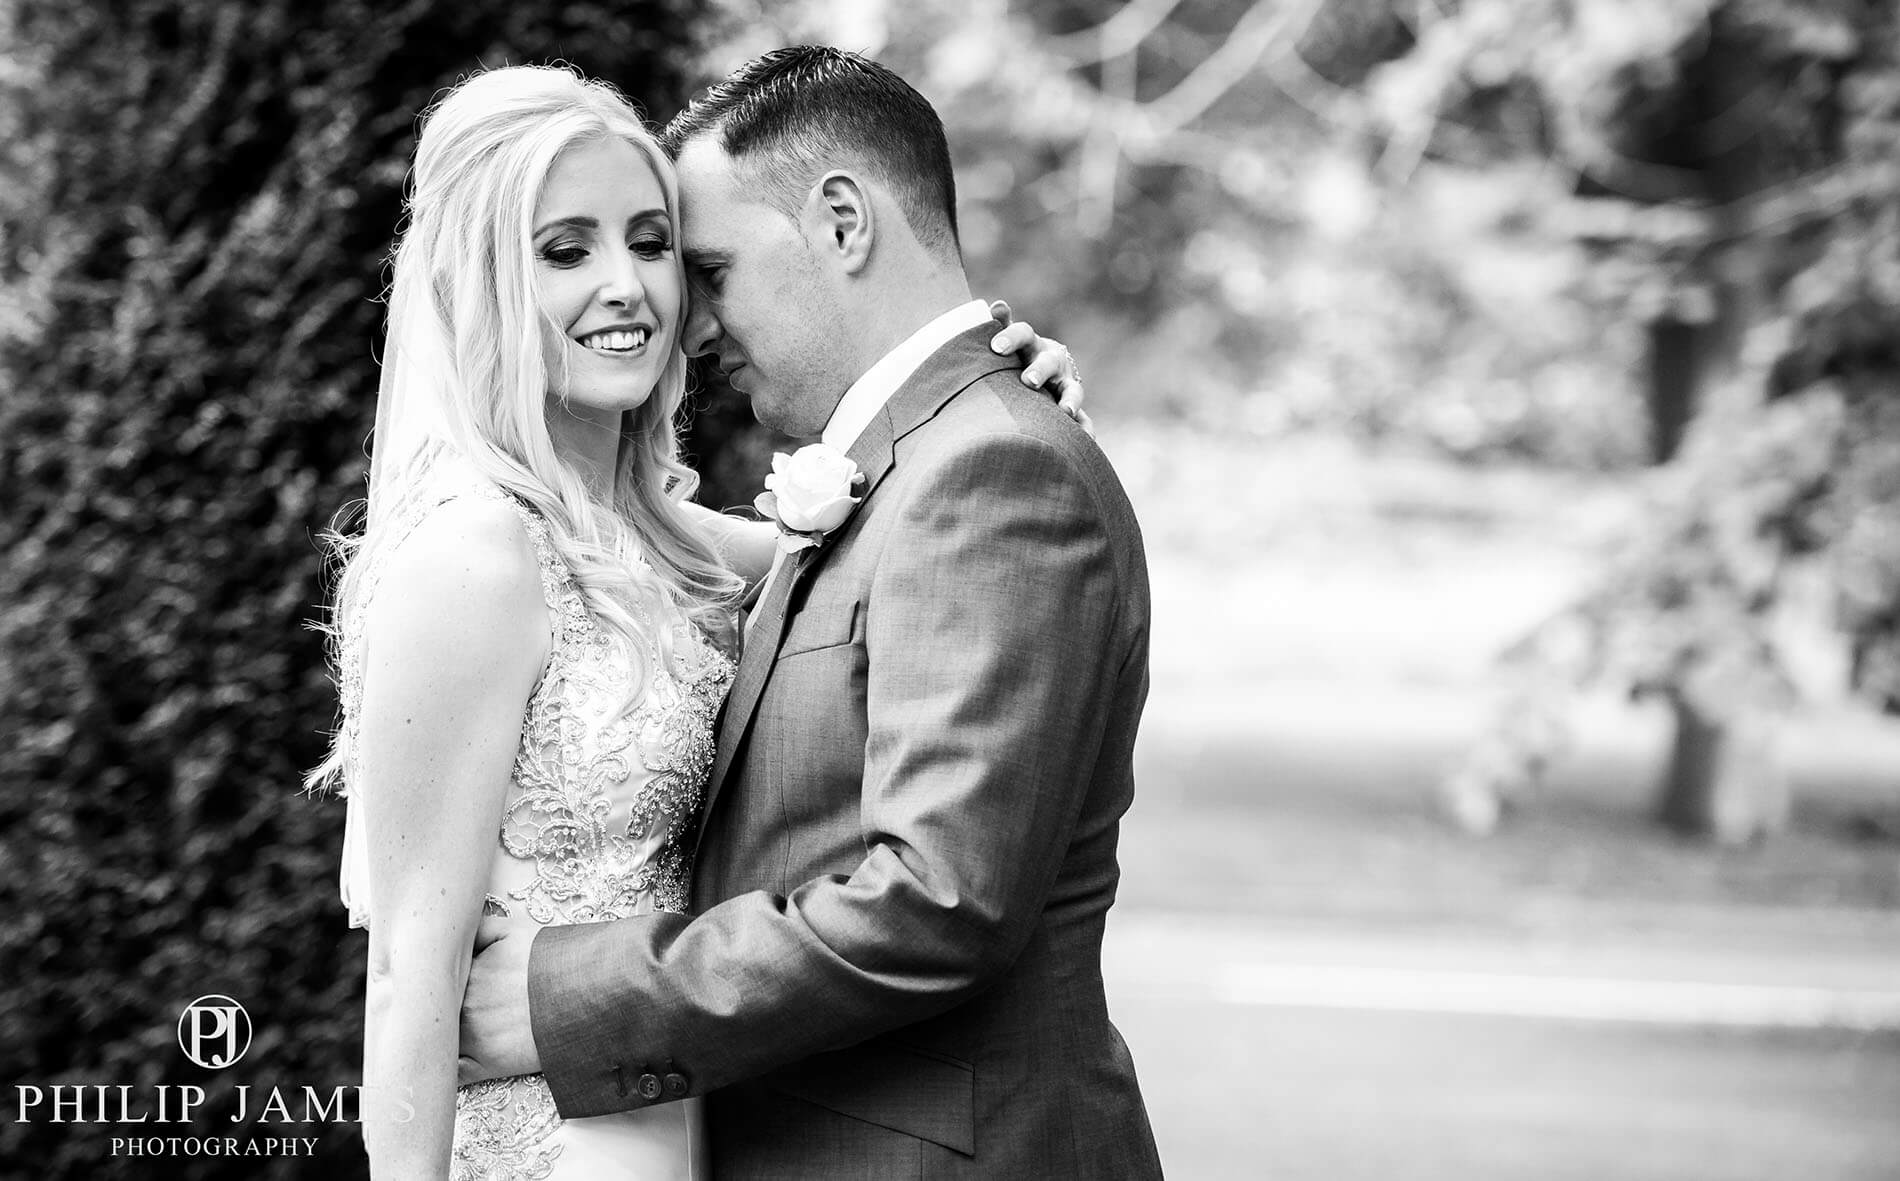 Birmingham Wedding Photographer - Philip James Photography based in Solihull (23 of 68)